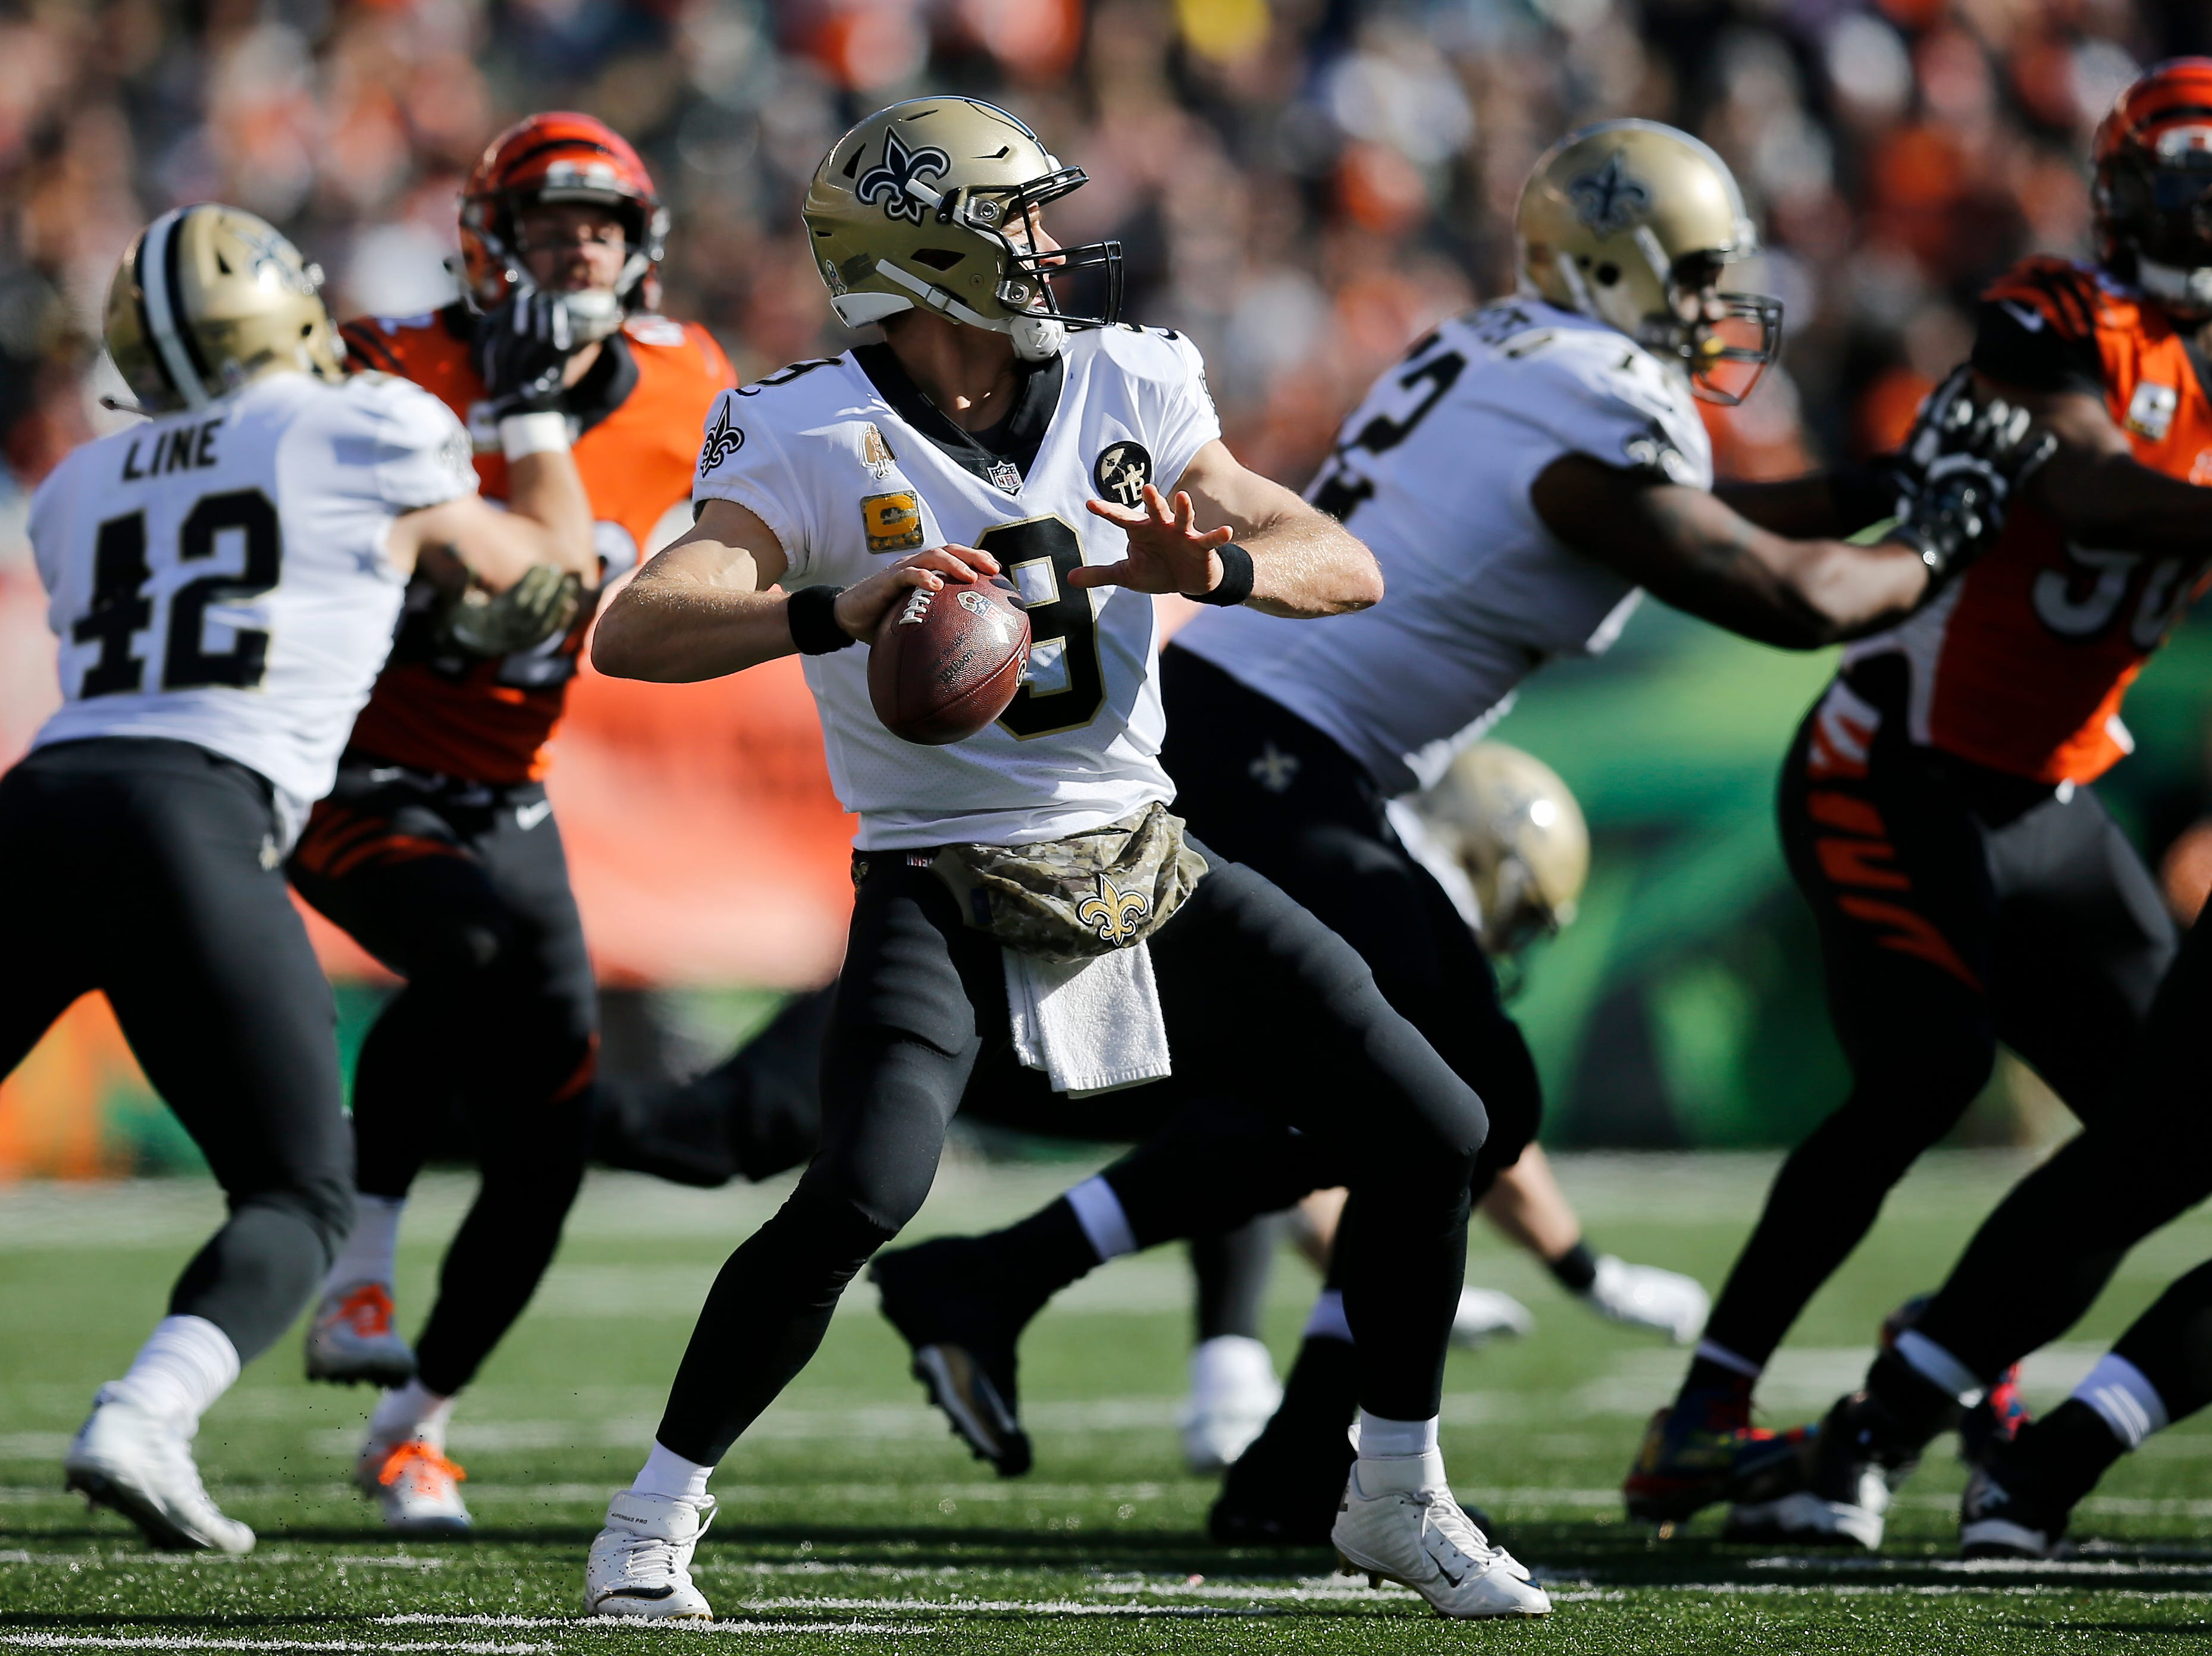 New Orleans Saints quarterback Drew Brees (9) drops back to throw a deep pass in the first quarter of the NFL Week 10 game between the Cincinnati Bengals and the New Orleans Saints at Paul Brown Stadium in downtown Cincinnati on Sunday, Nov. 11, 2018. The Saints led 35-7 at halftime.